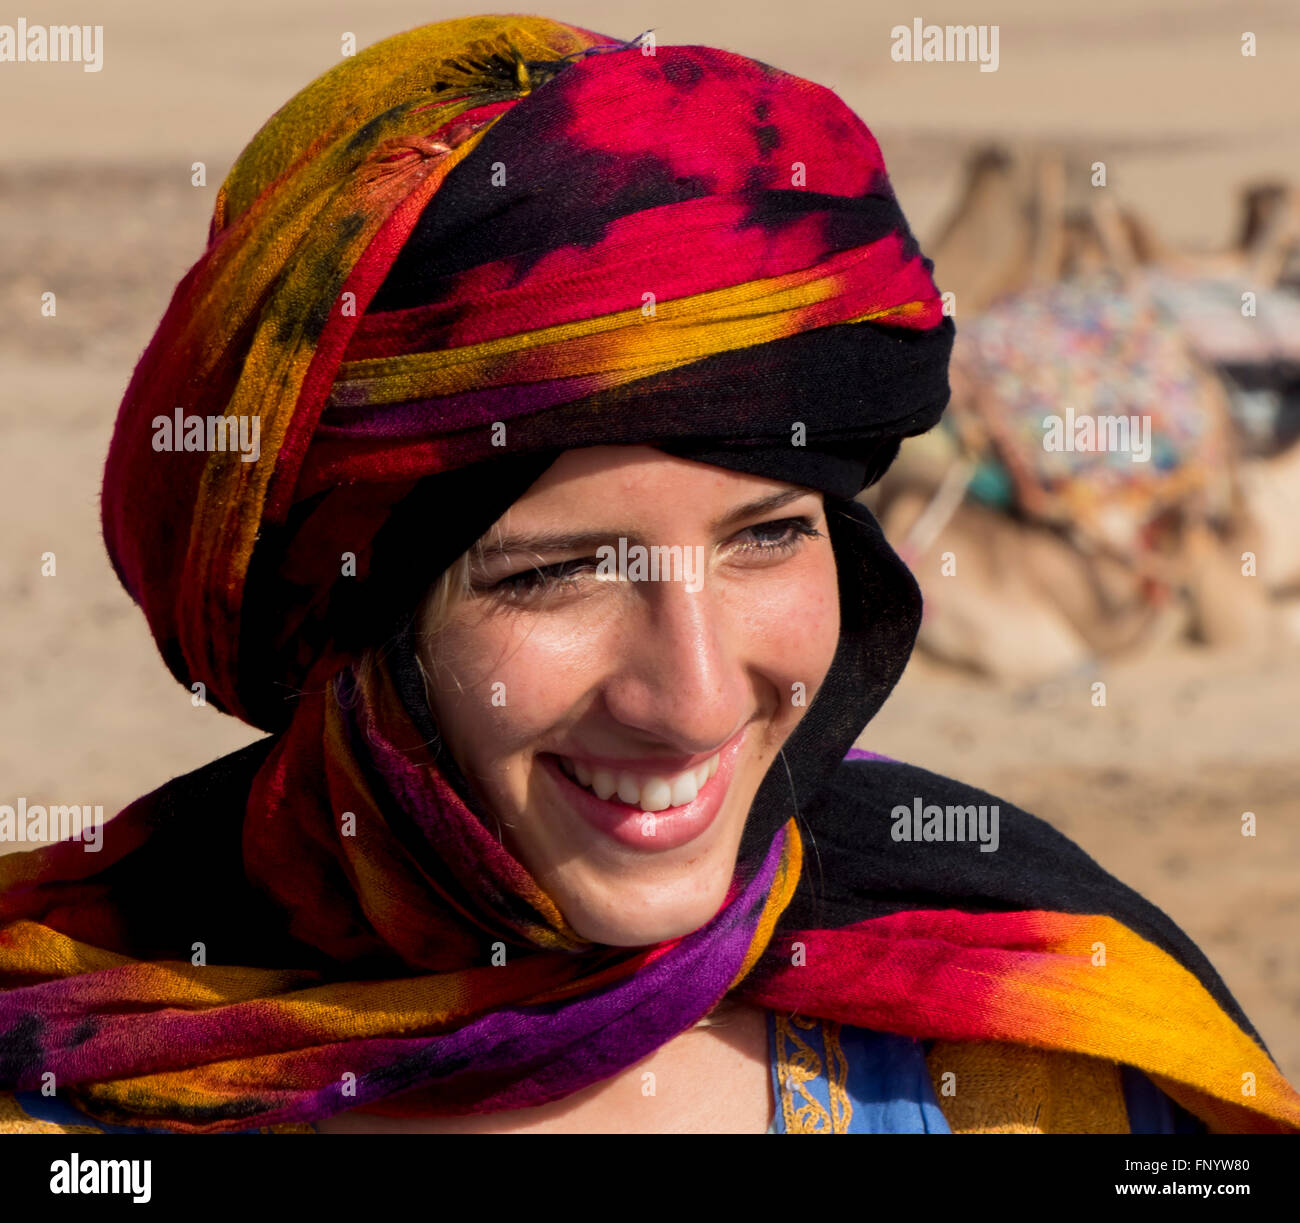 cool girl and Berber cheche headress - Stock Image